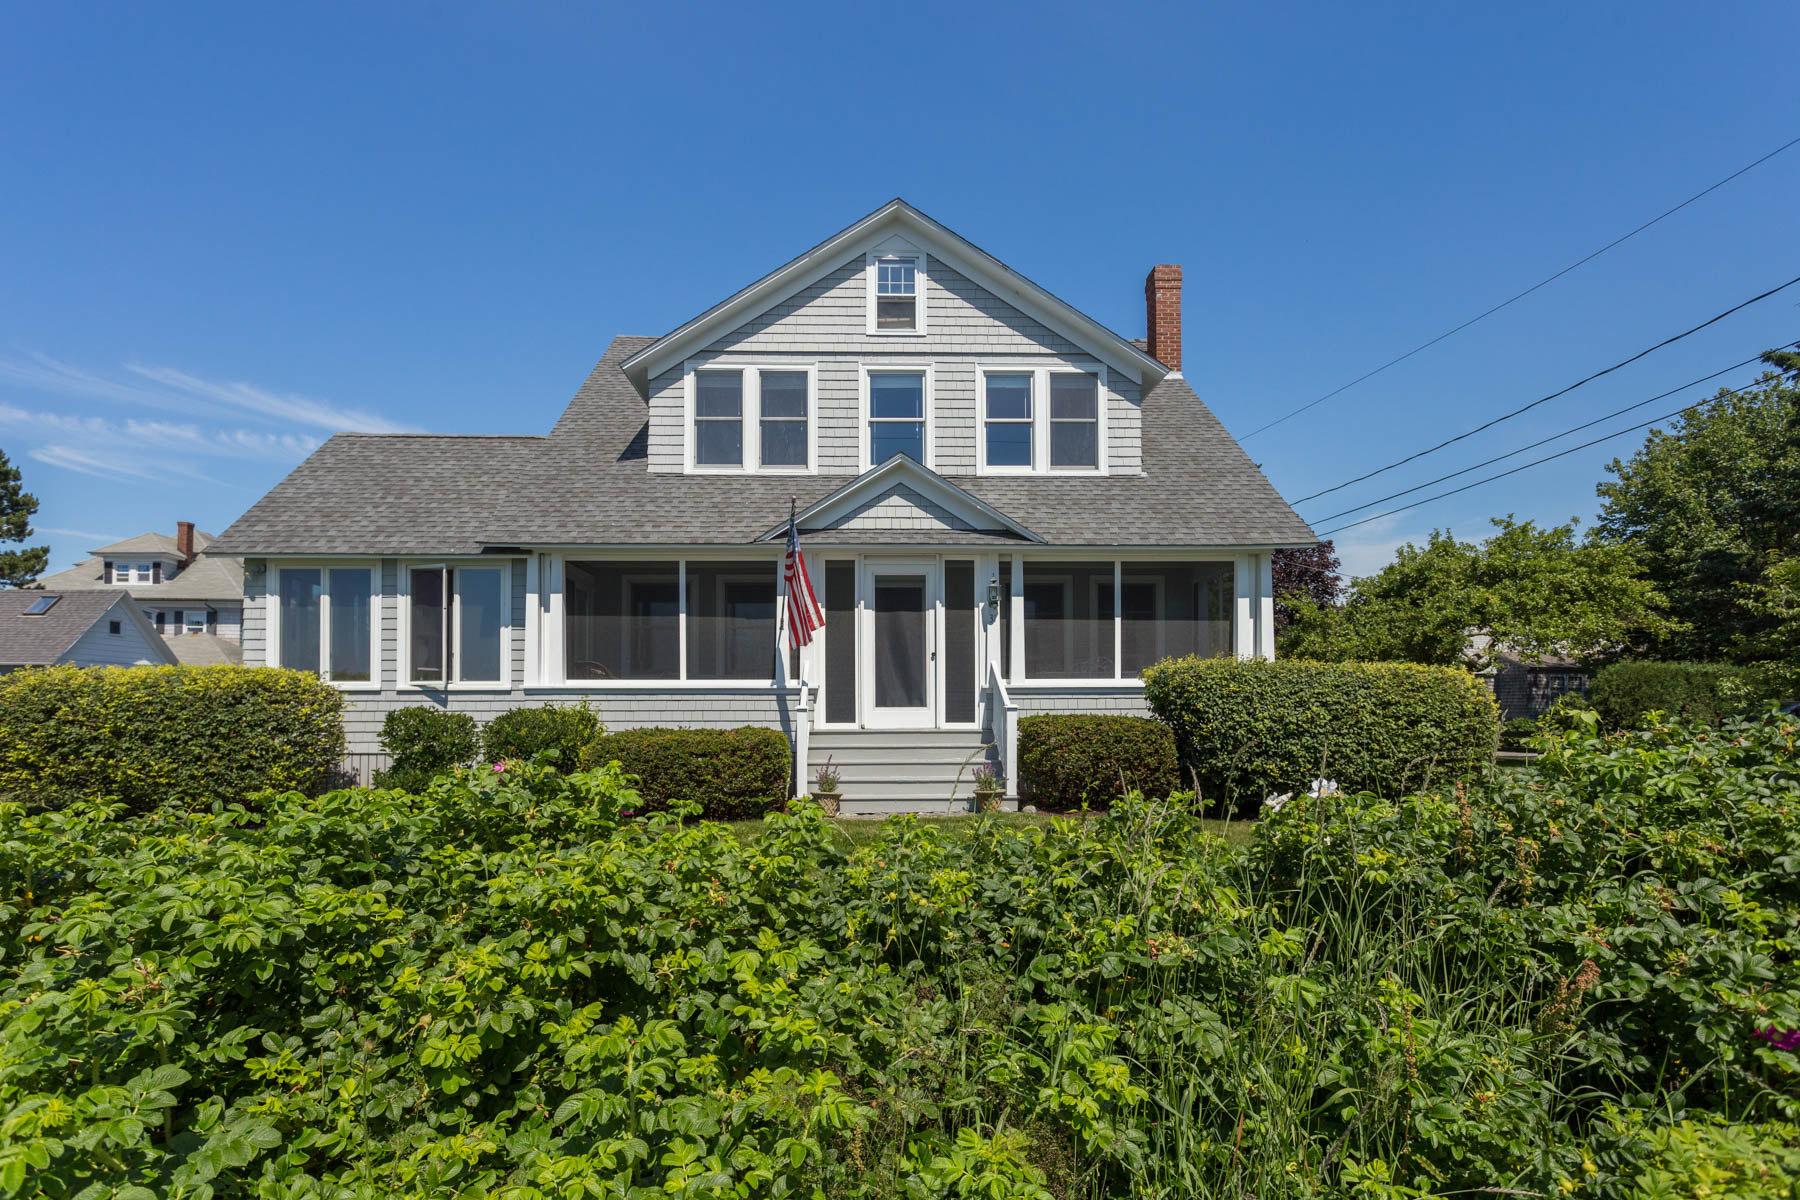 Single Family Home for Sale at 31 Great Hill Road Kennebunk, Maine 04043 United States